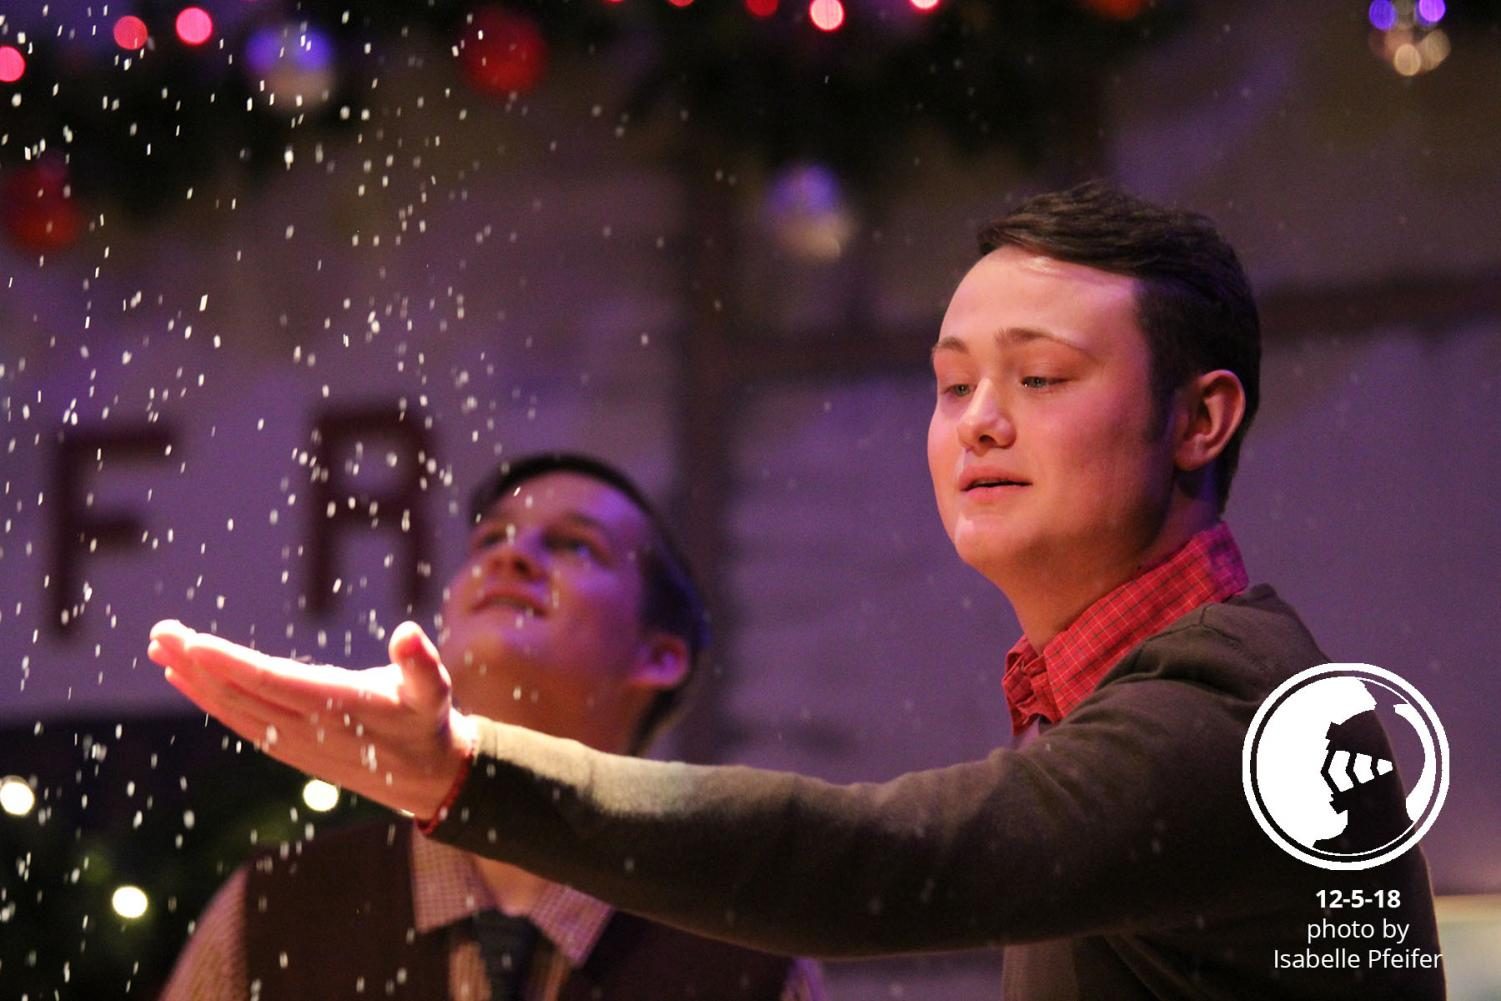 In the closing scene, senior Jonah Nichols reaches for the snow Dec 5. The play ran Dec. 6 and is scheduled for Dec. 8 and Dec. 9.